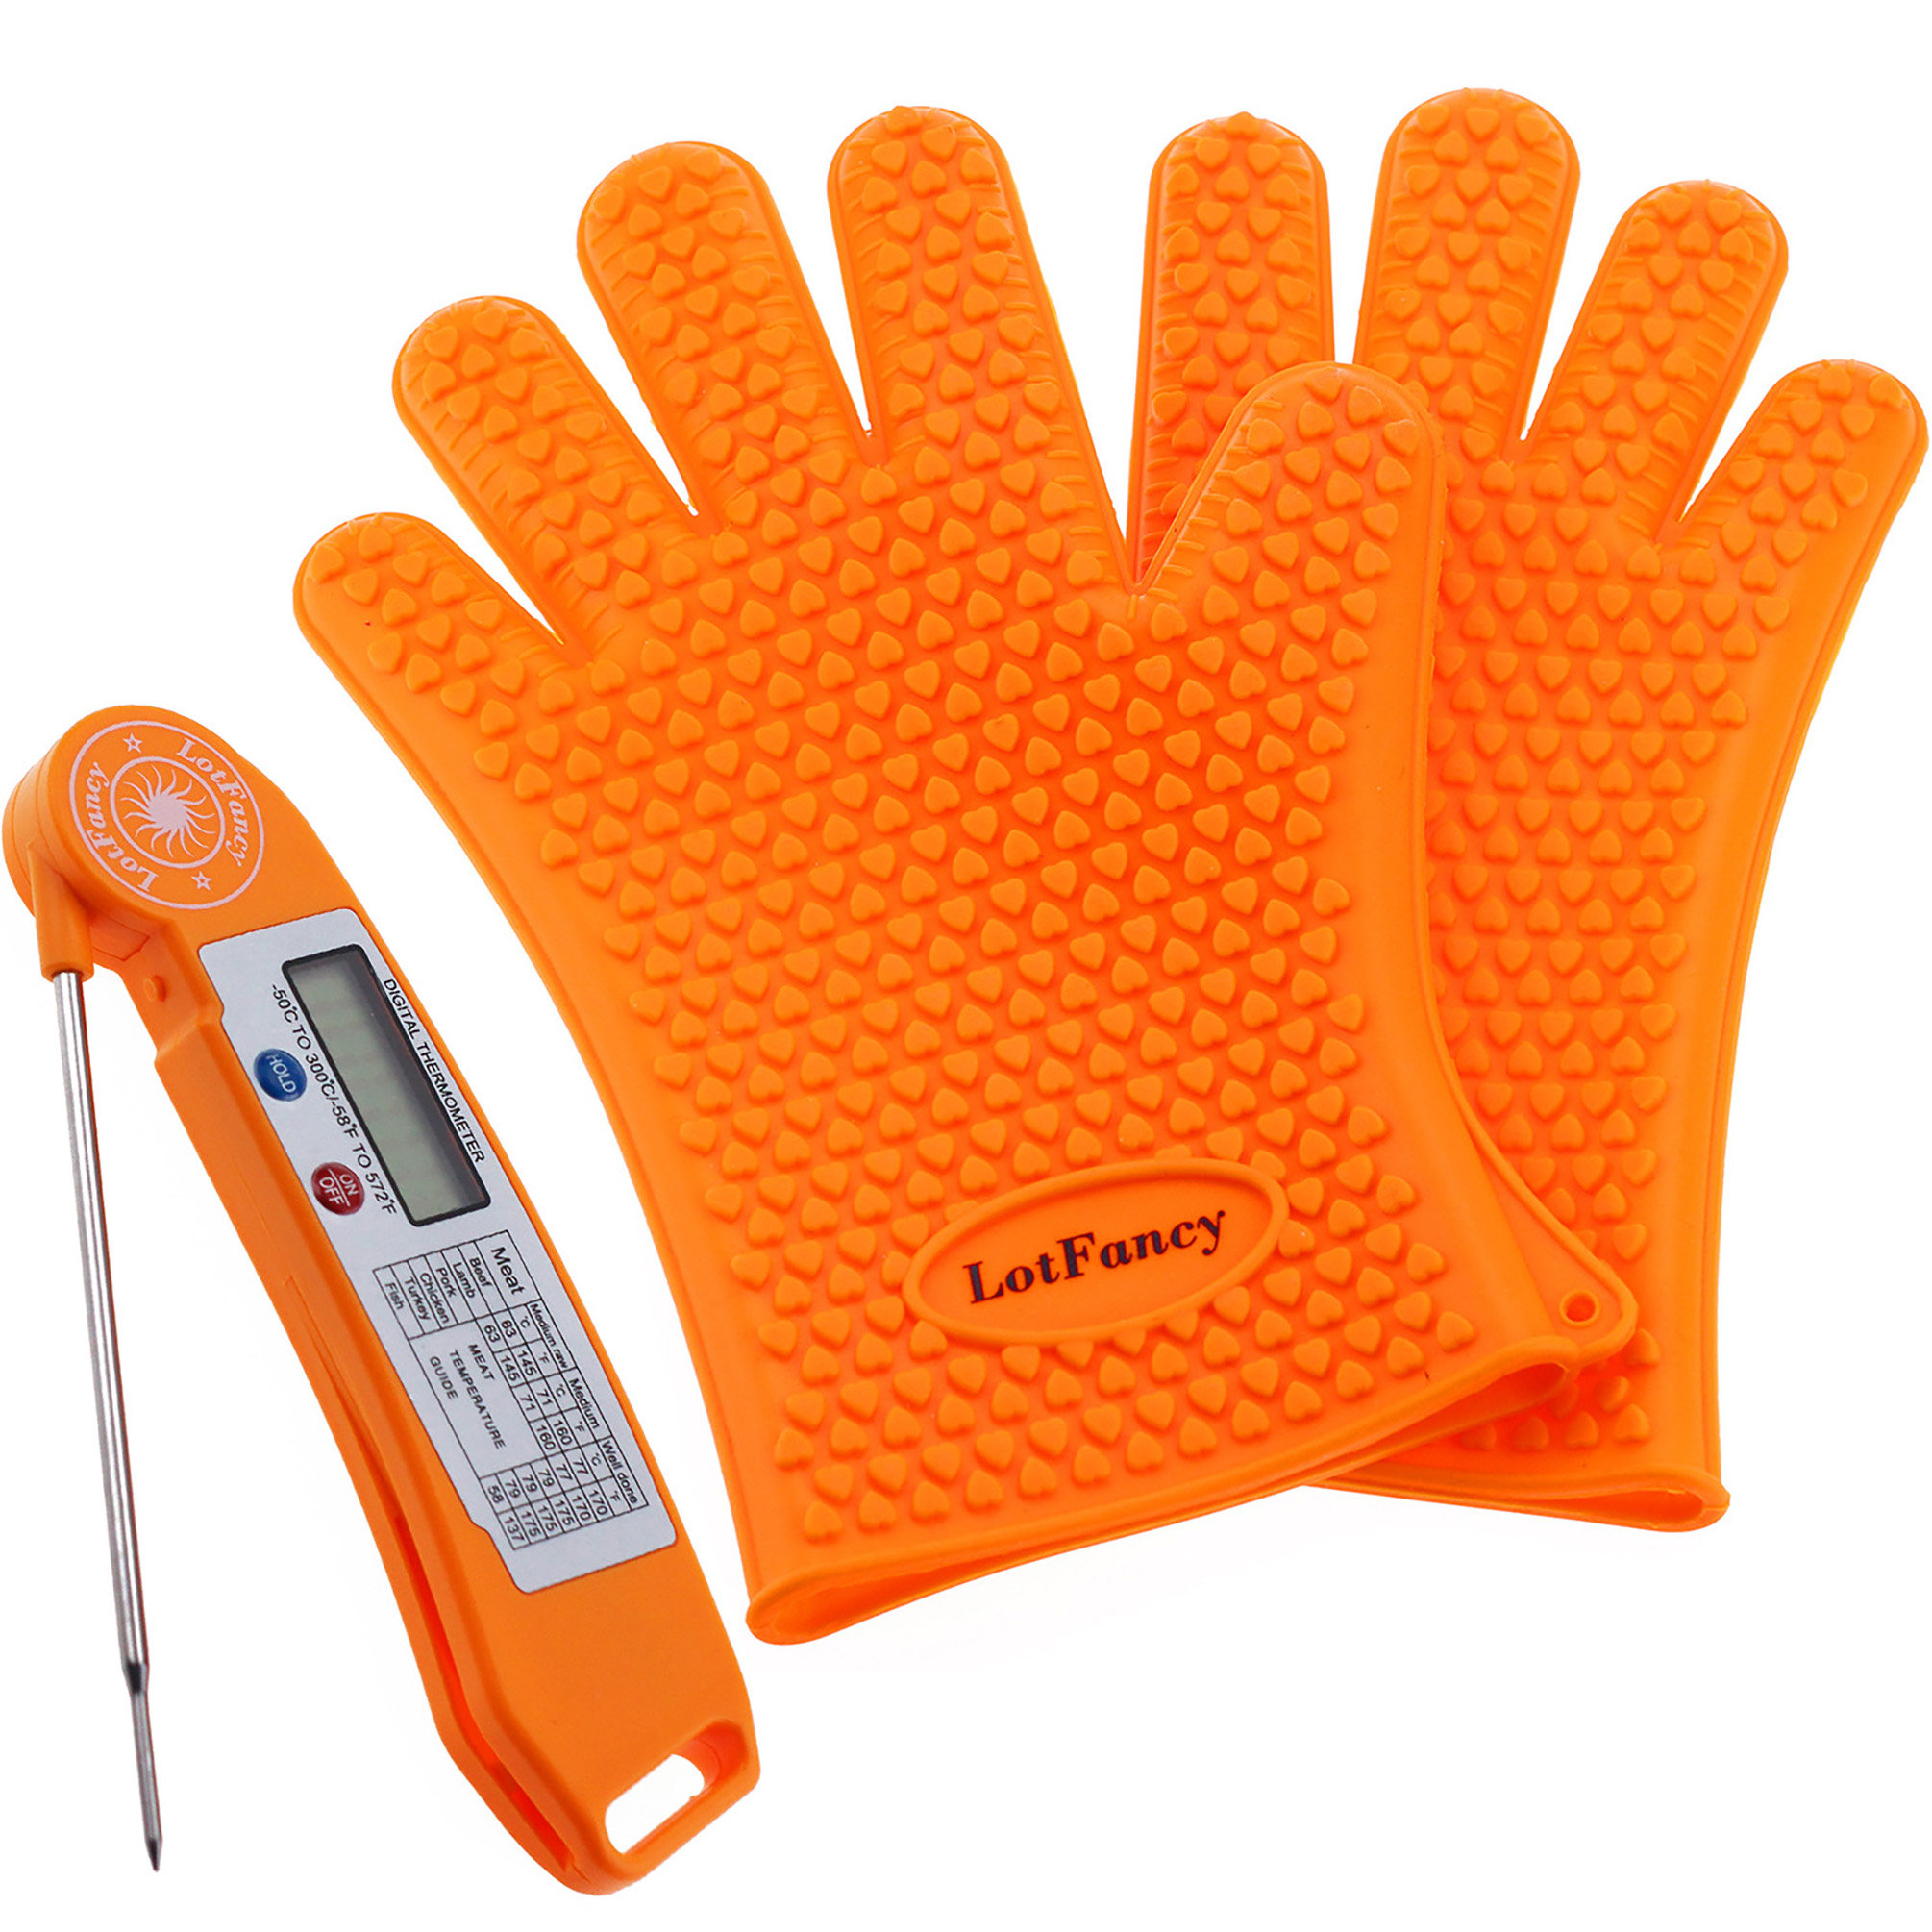 LotFancy 1 Javelin Instant Read Digital Meat Thermometer & 2 Heat Resistant Cooking Gloves for Barbecue Smoking Grilling and Oven Cooking, FDA Approved